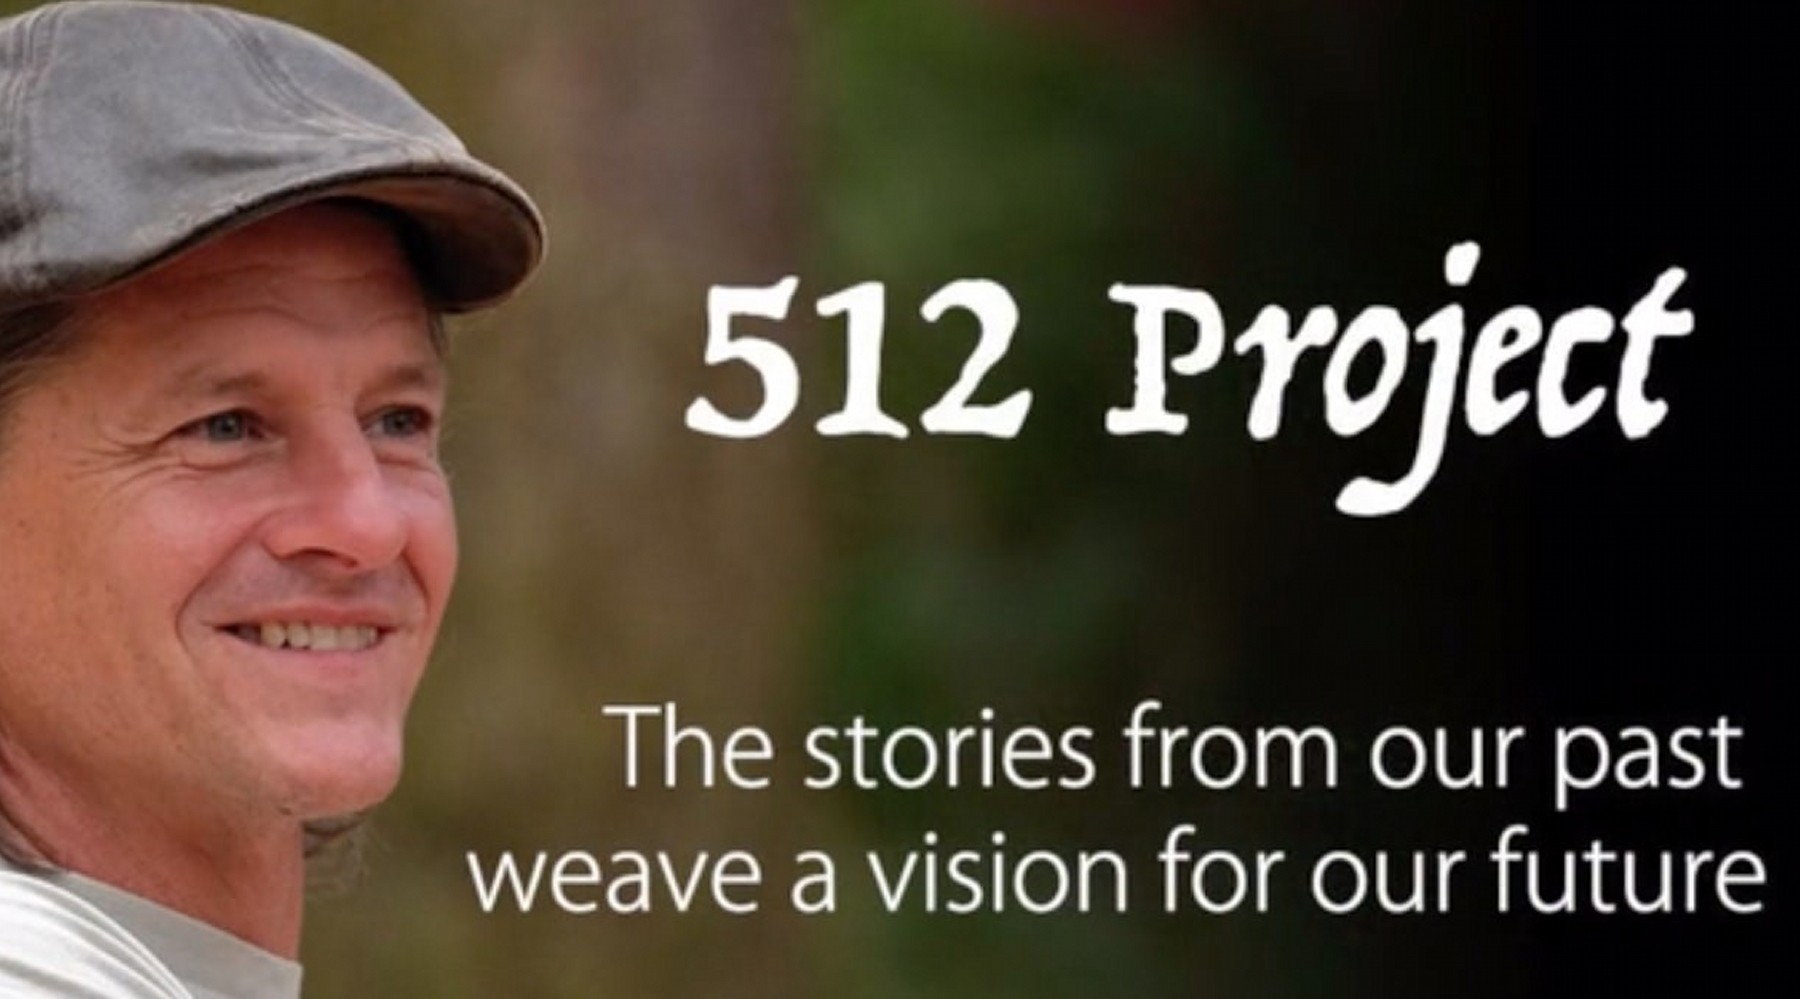 A Nature Connected Culture – The 512 Project By Jon Young